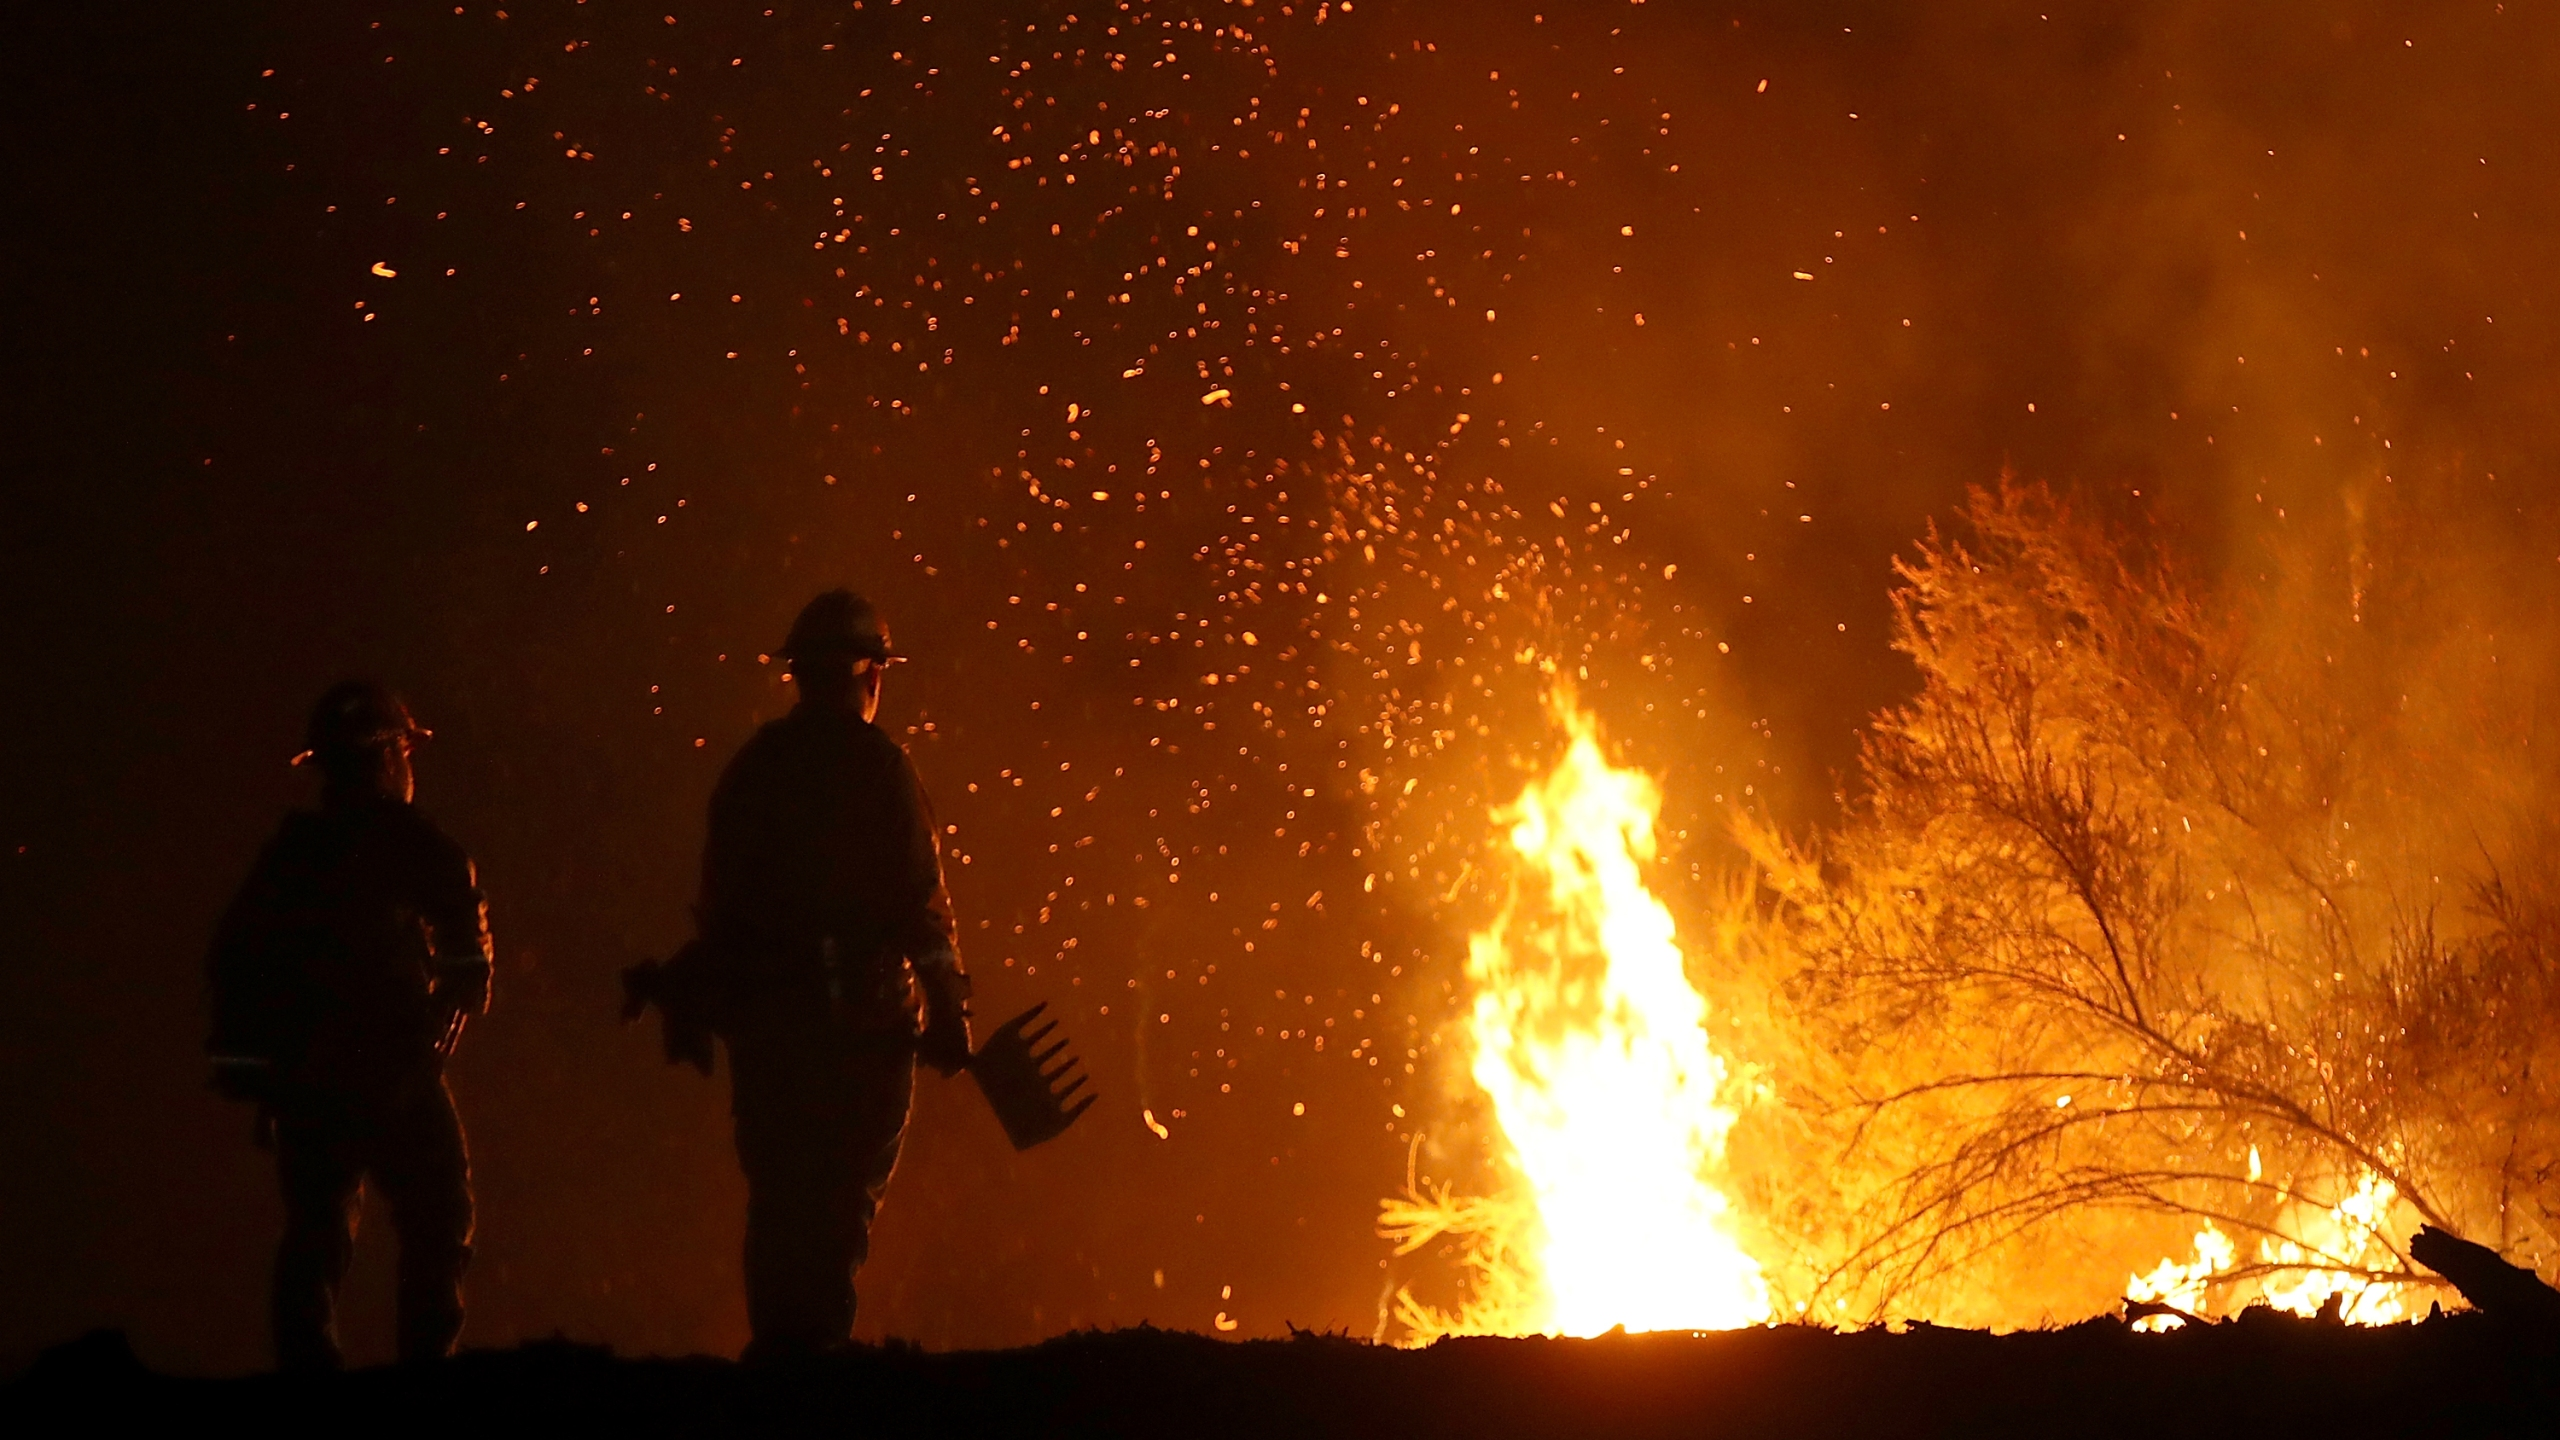 Cal Fire firefighters monitor a back fire as they battle the Medocino Complex Fire on Aug. 7, 2018, near Lodoga. (Credit: Justin Sullivan/Getty Images)